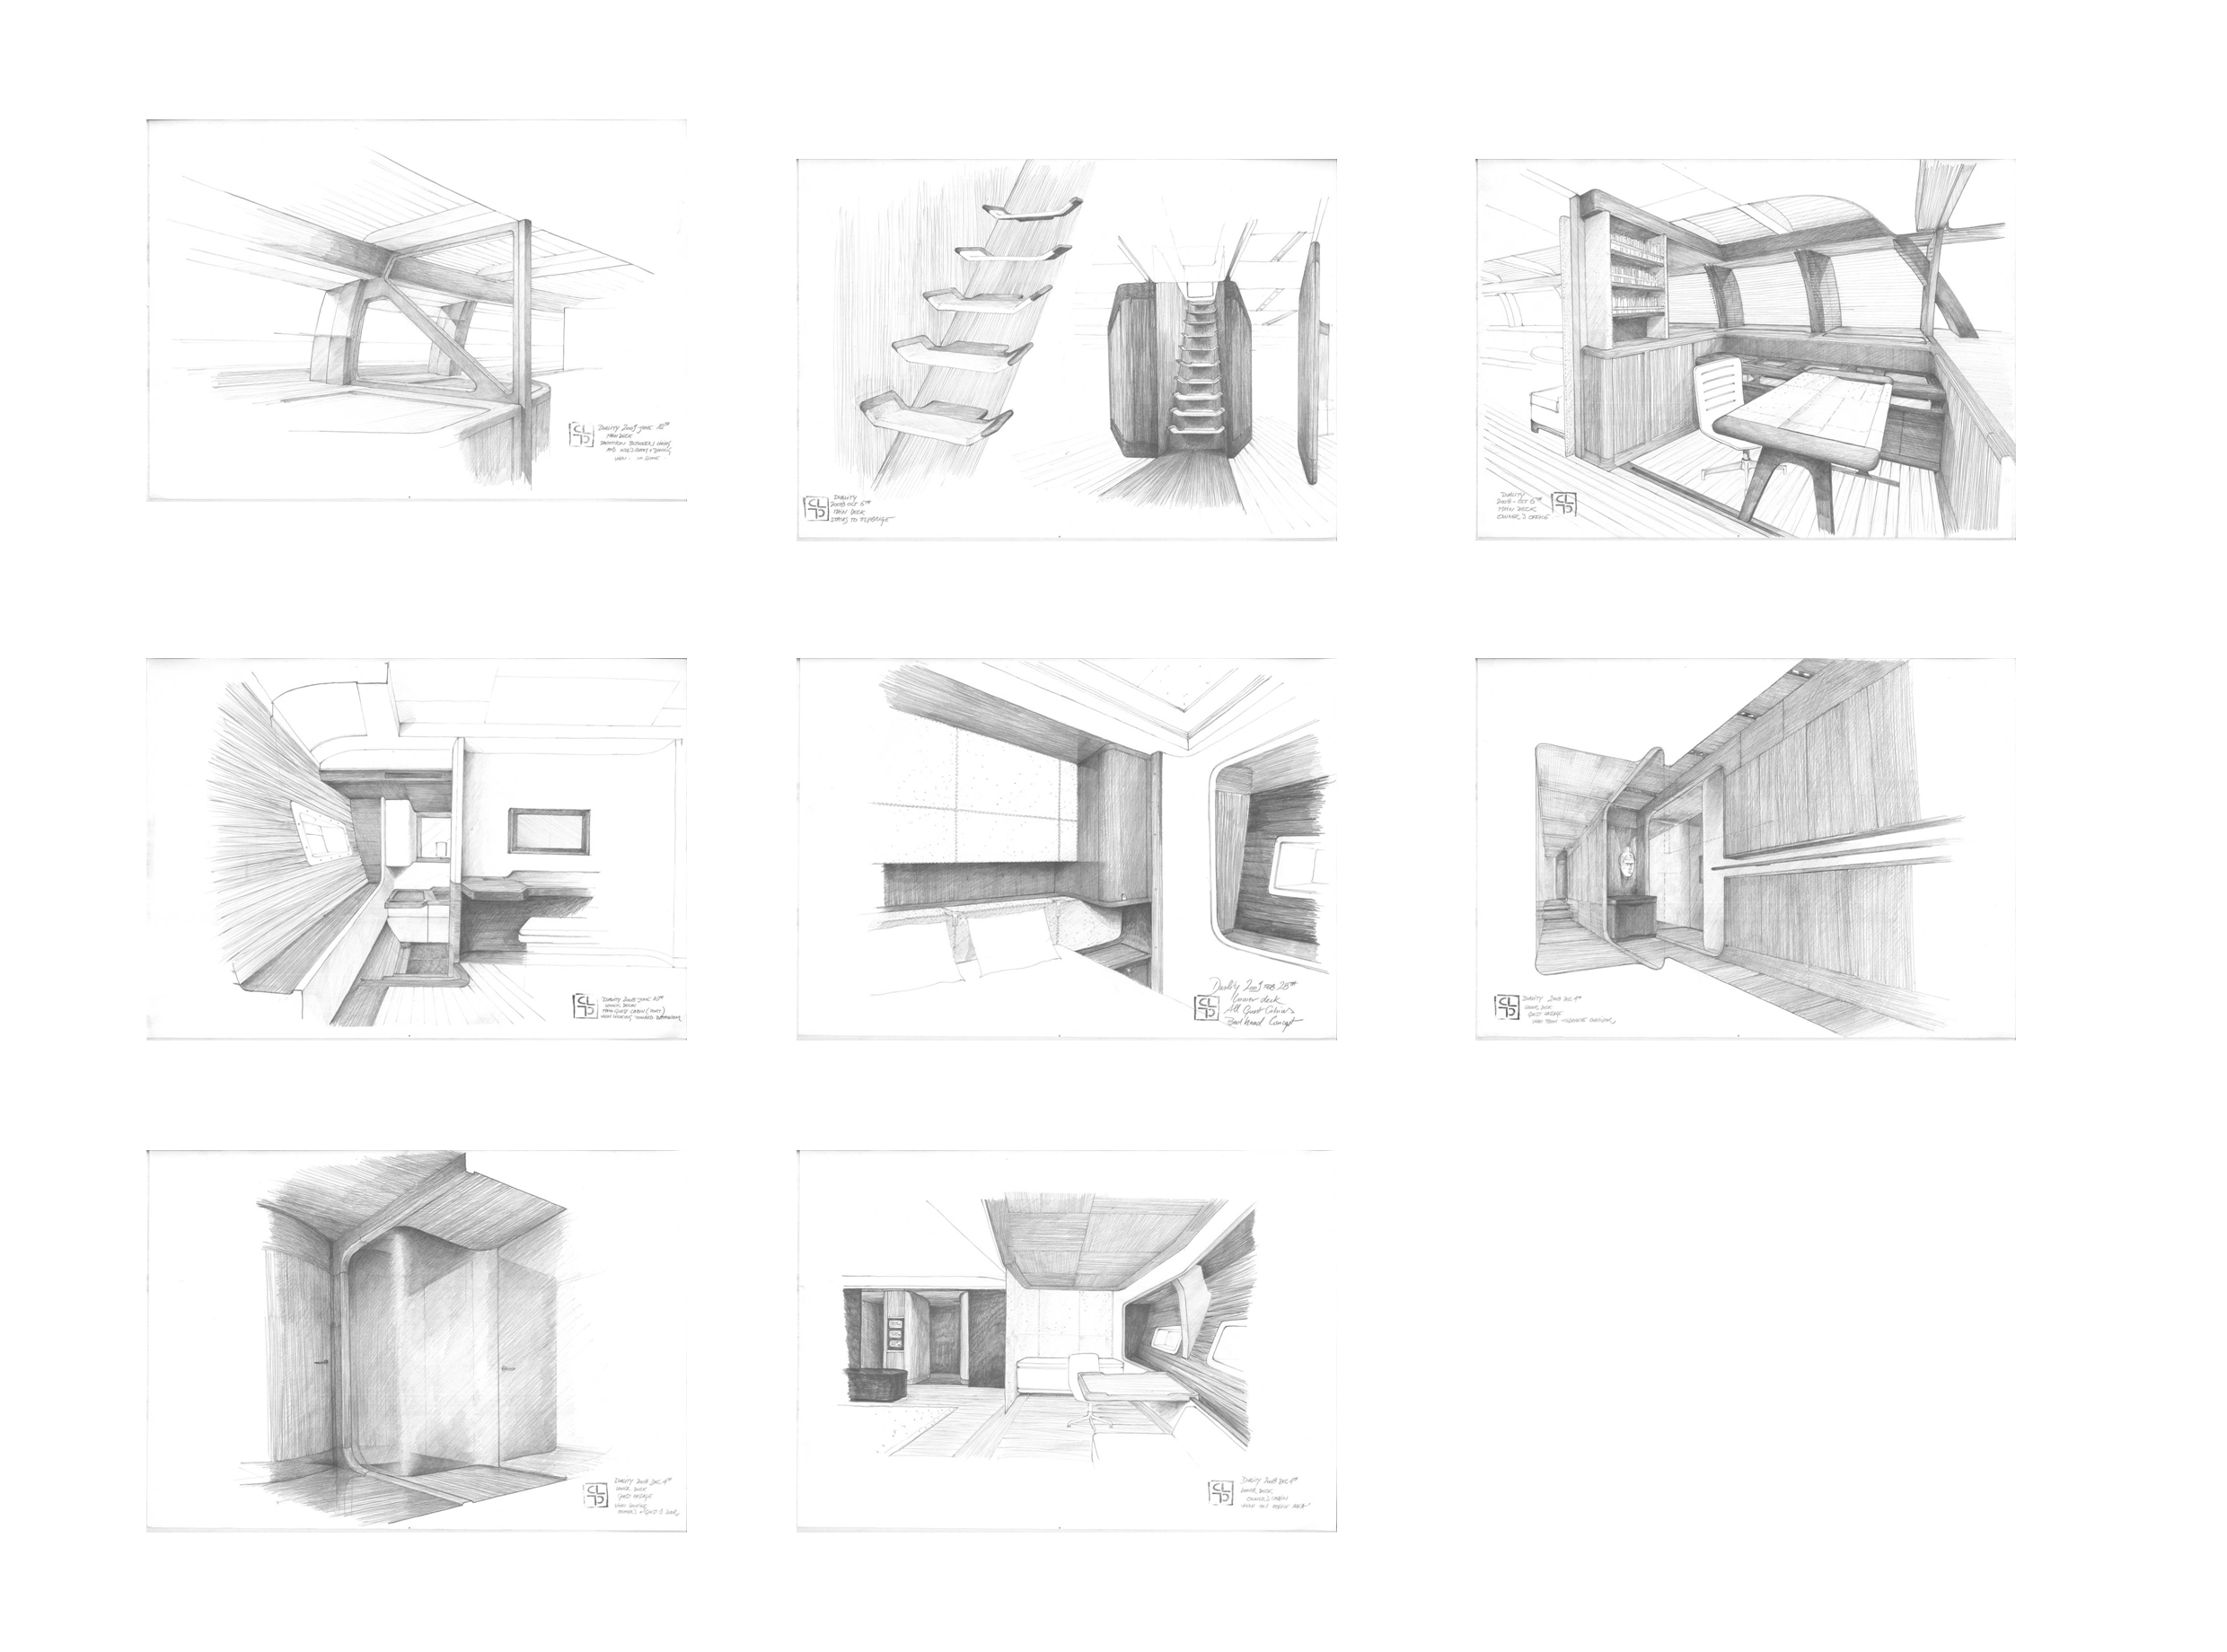 Christian liaigre interior designer drawings of the alloy for Interior designs drawings